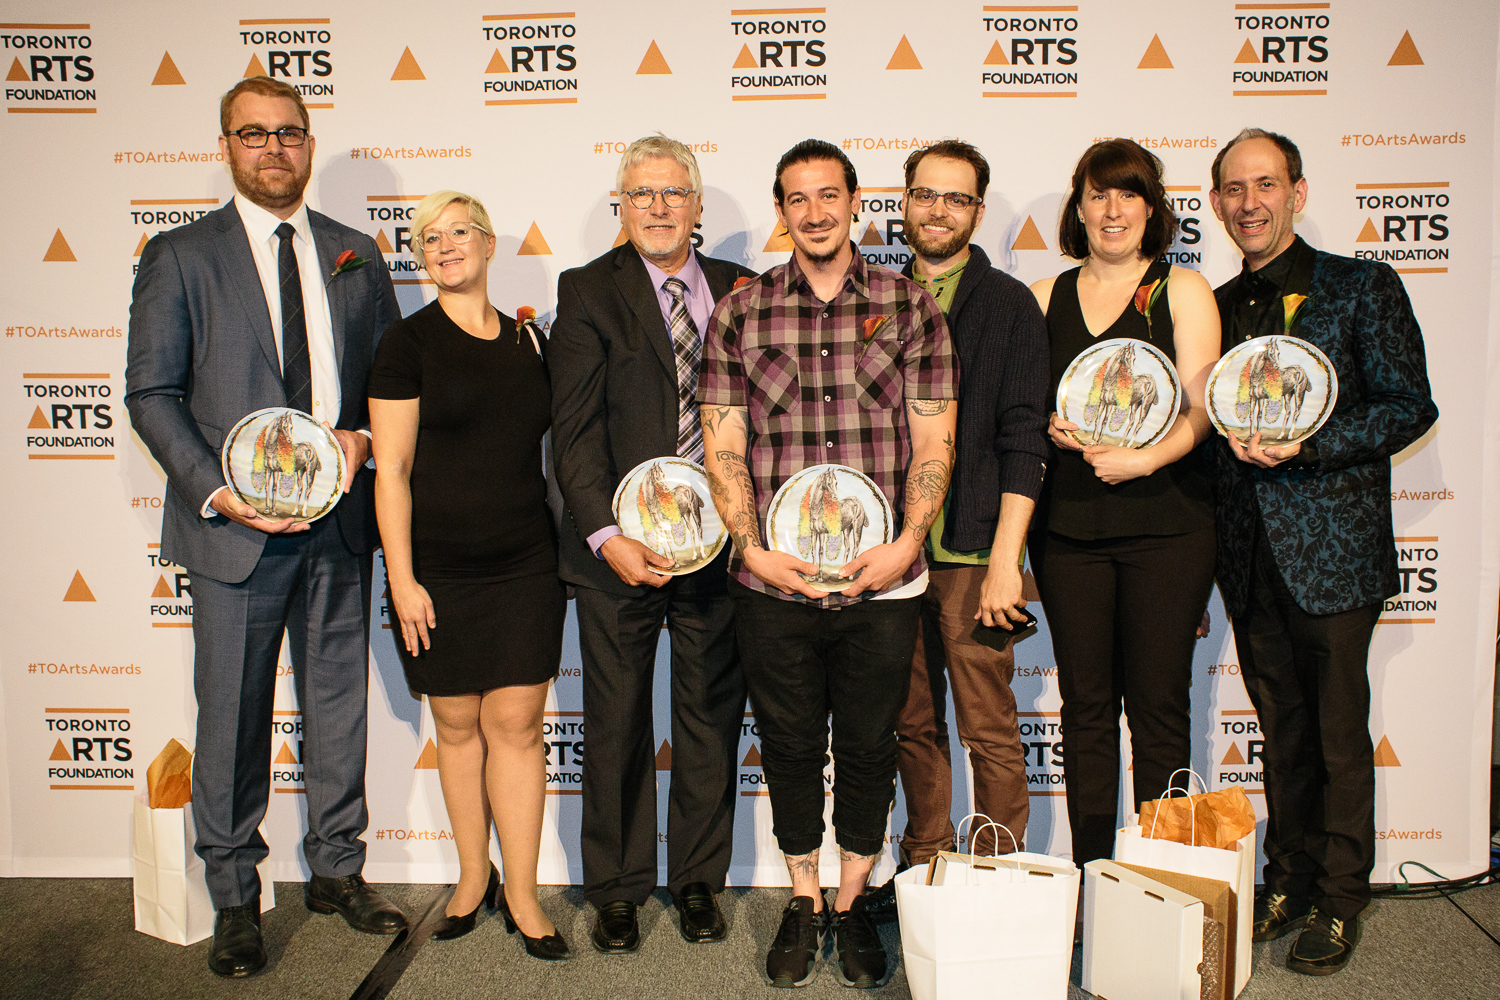 The winners of the 2015 Toronto Arts Foundation Awards. Left to right: Chris Eben, Holly Knowlman, Paul Read, Drex Jancar, Gavin Sheppard, Emilie LeBel, Scott Miller Berry. Photo by Sean Howard.